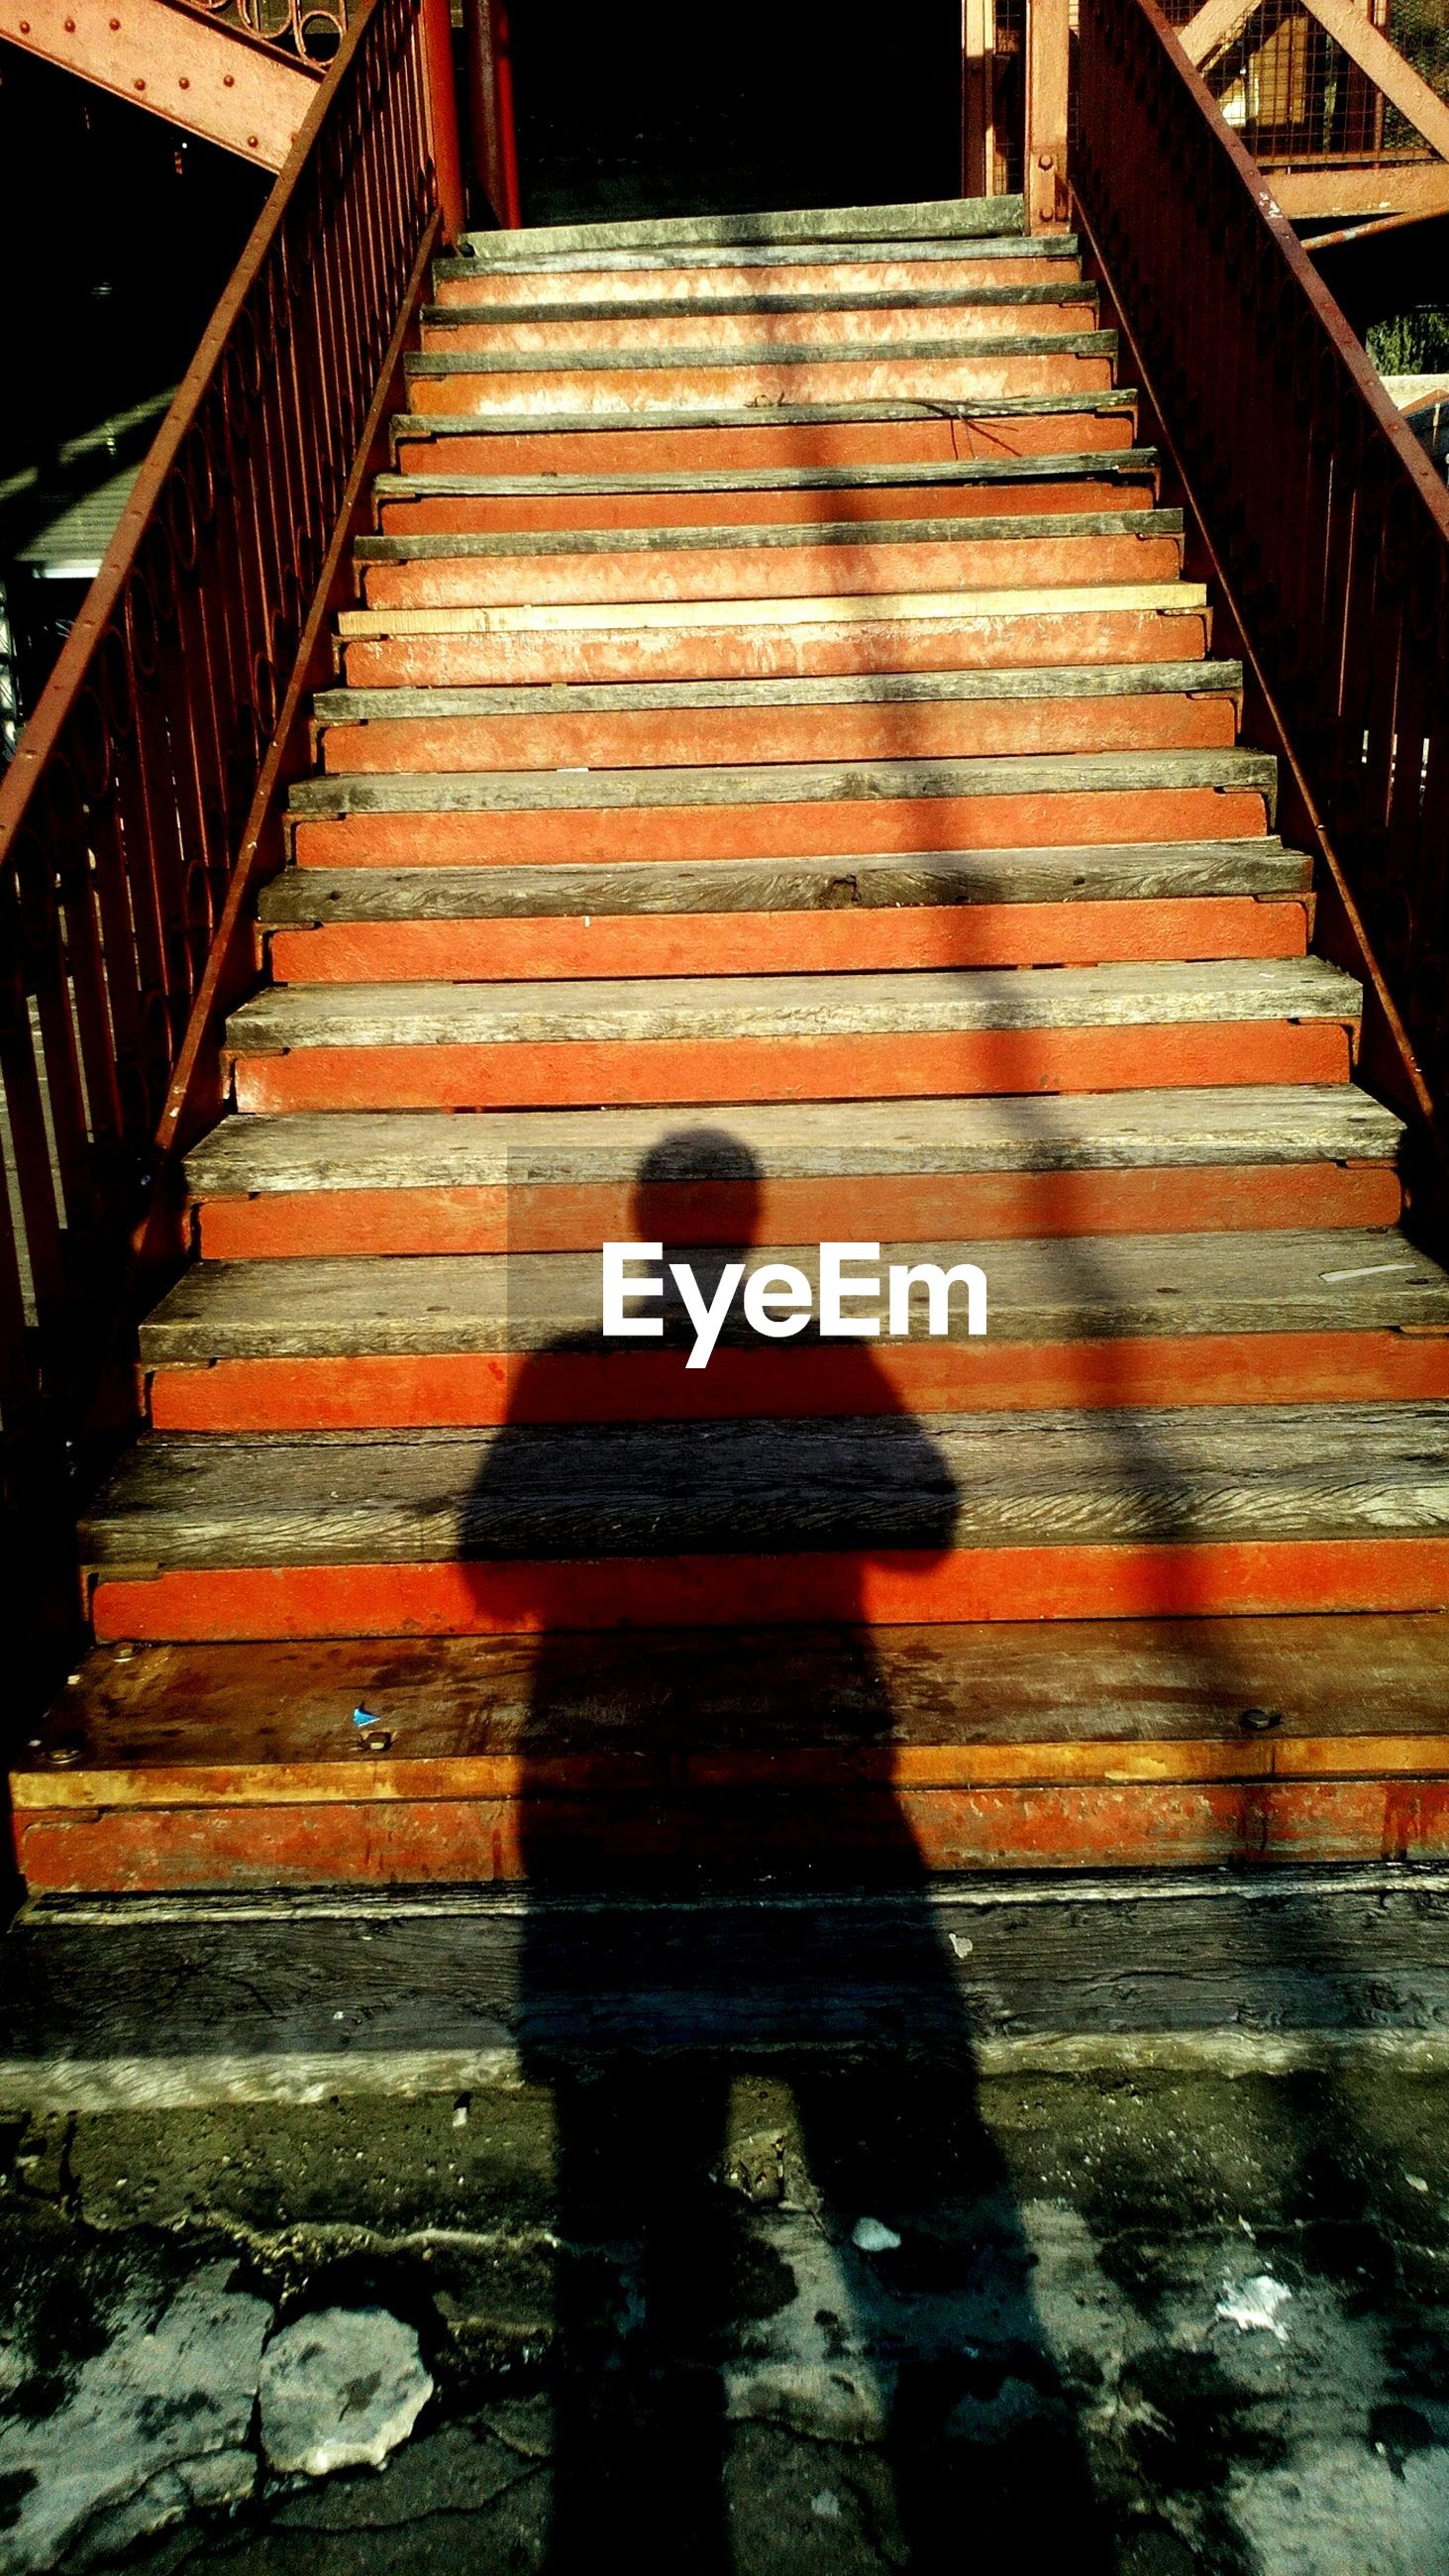 Shadow of man on staircase